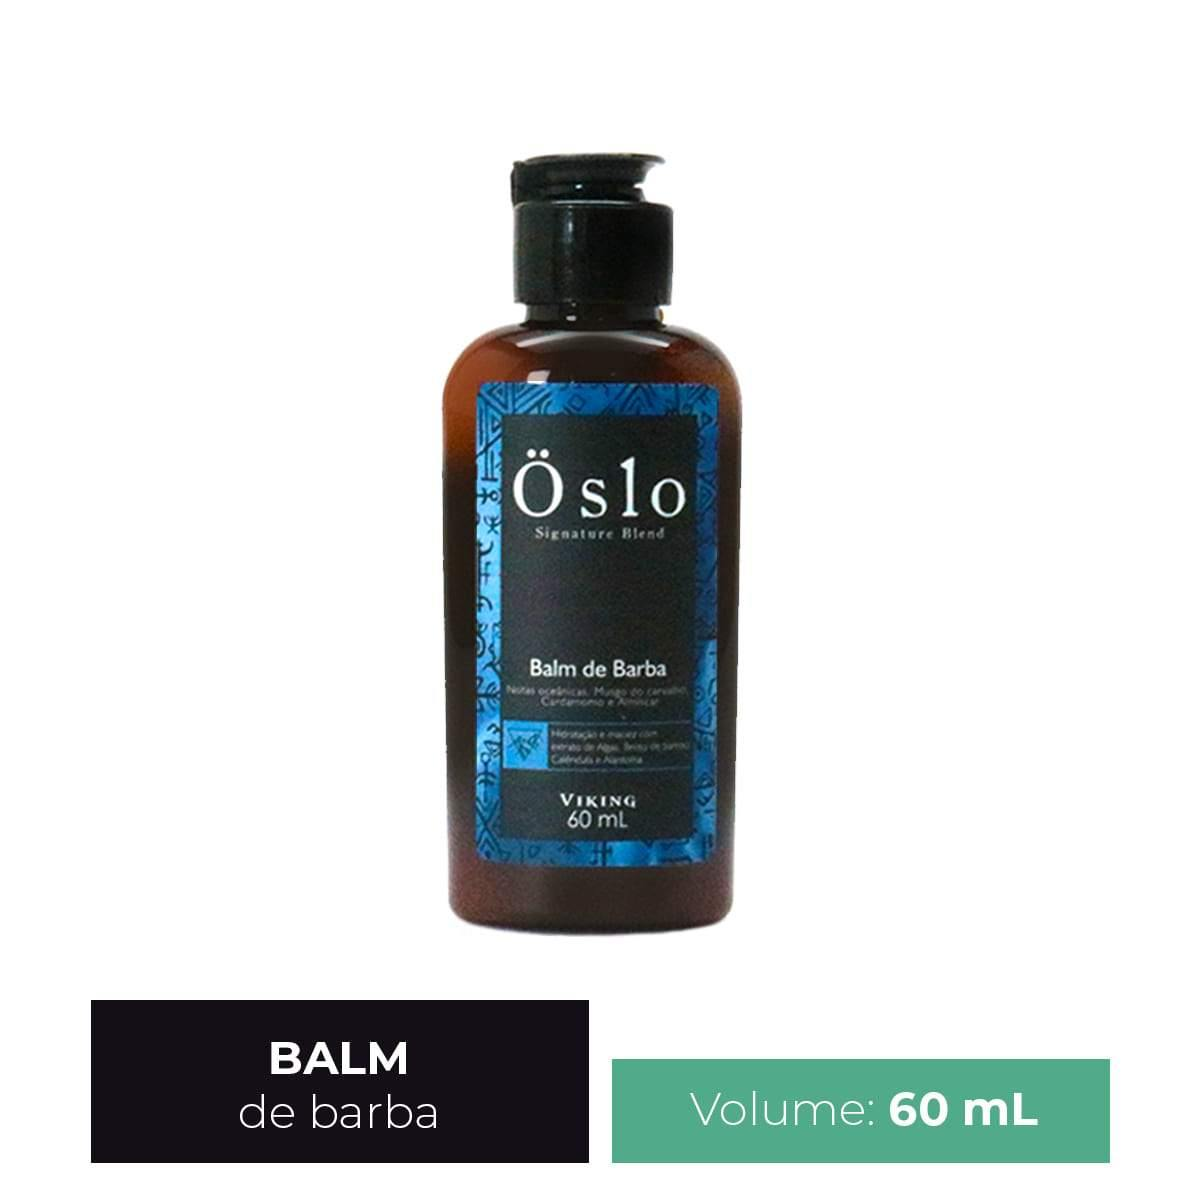 Balm de Barba Öslo by Viking 60ml